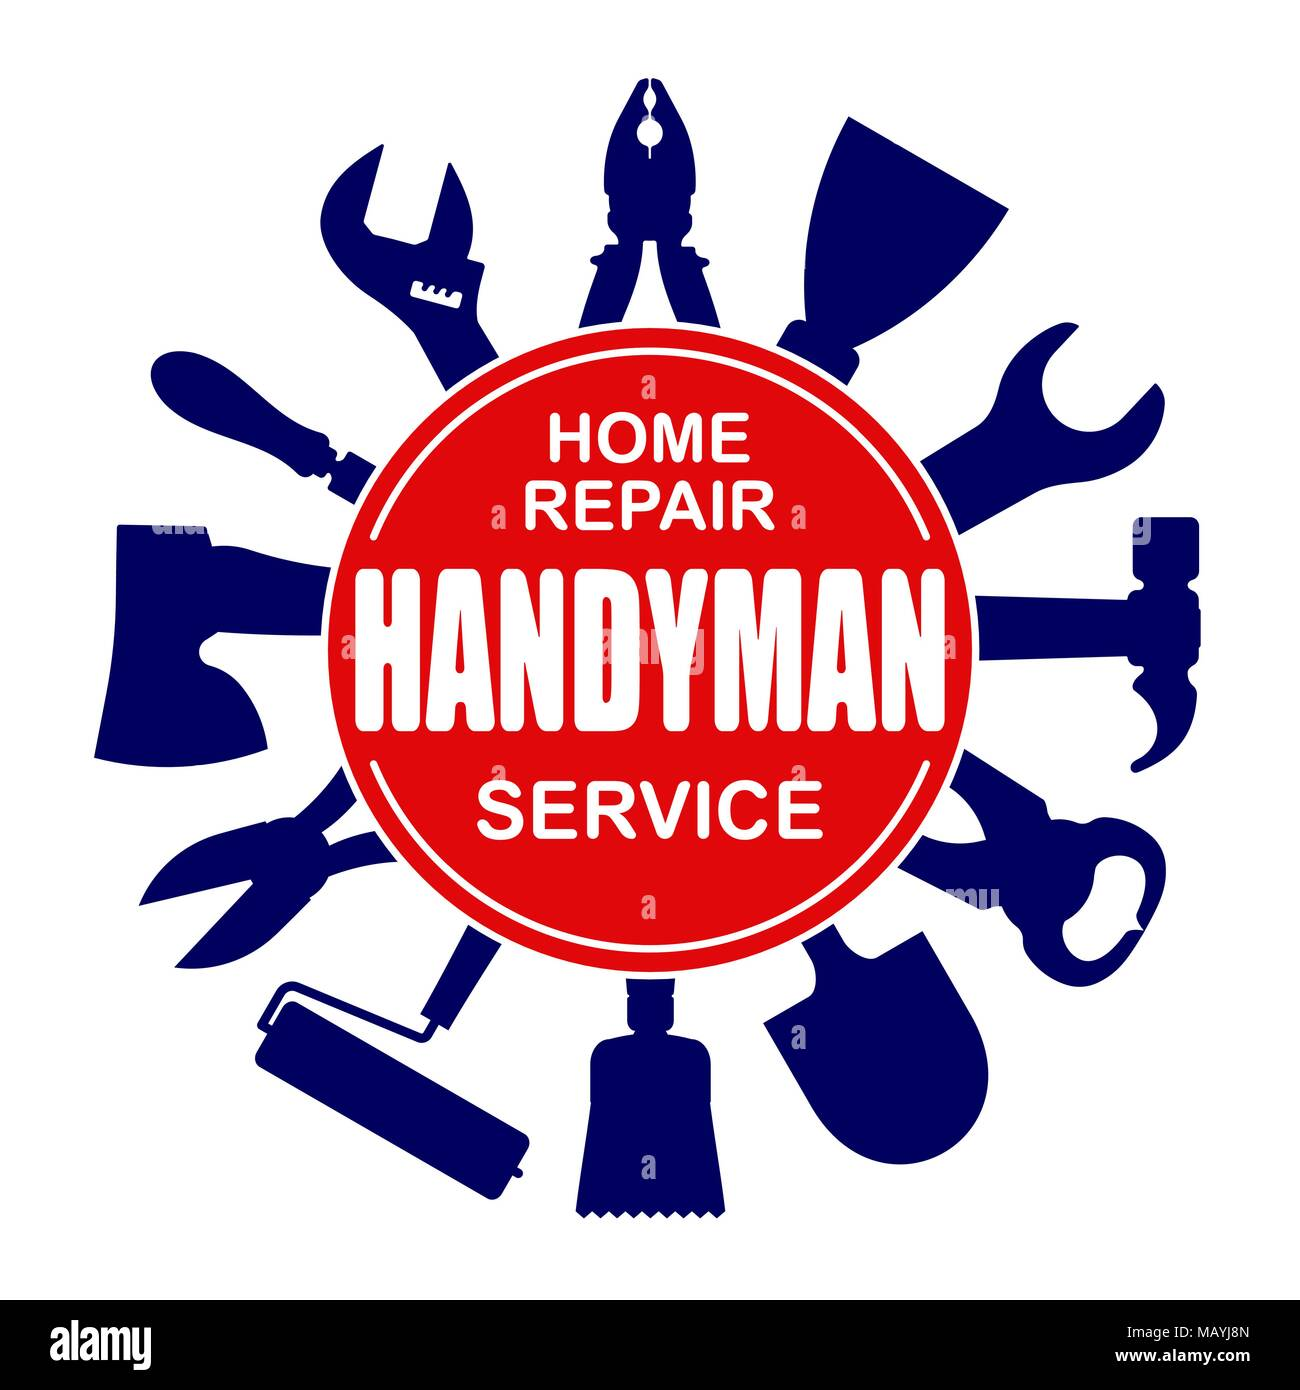 Handyman Vector Vectors Stock Photos & Handyman Vector